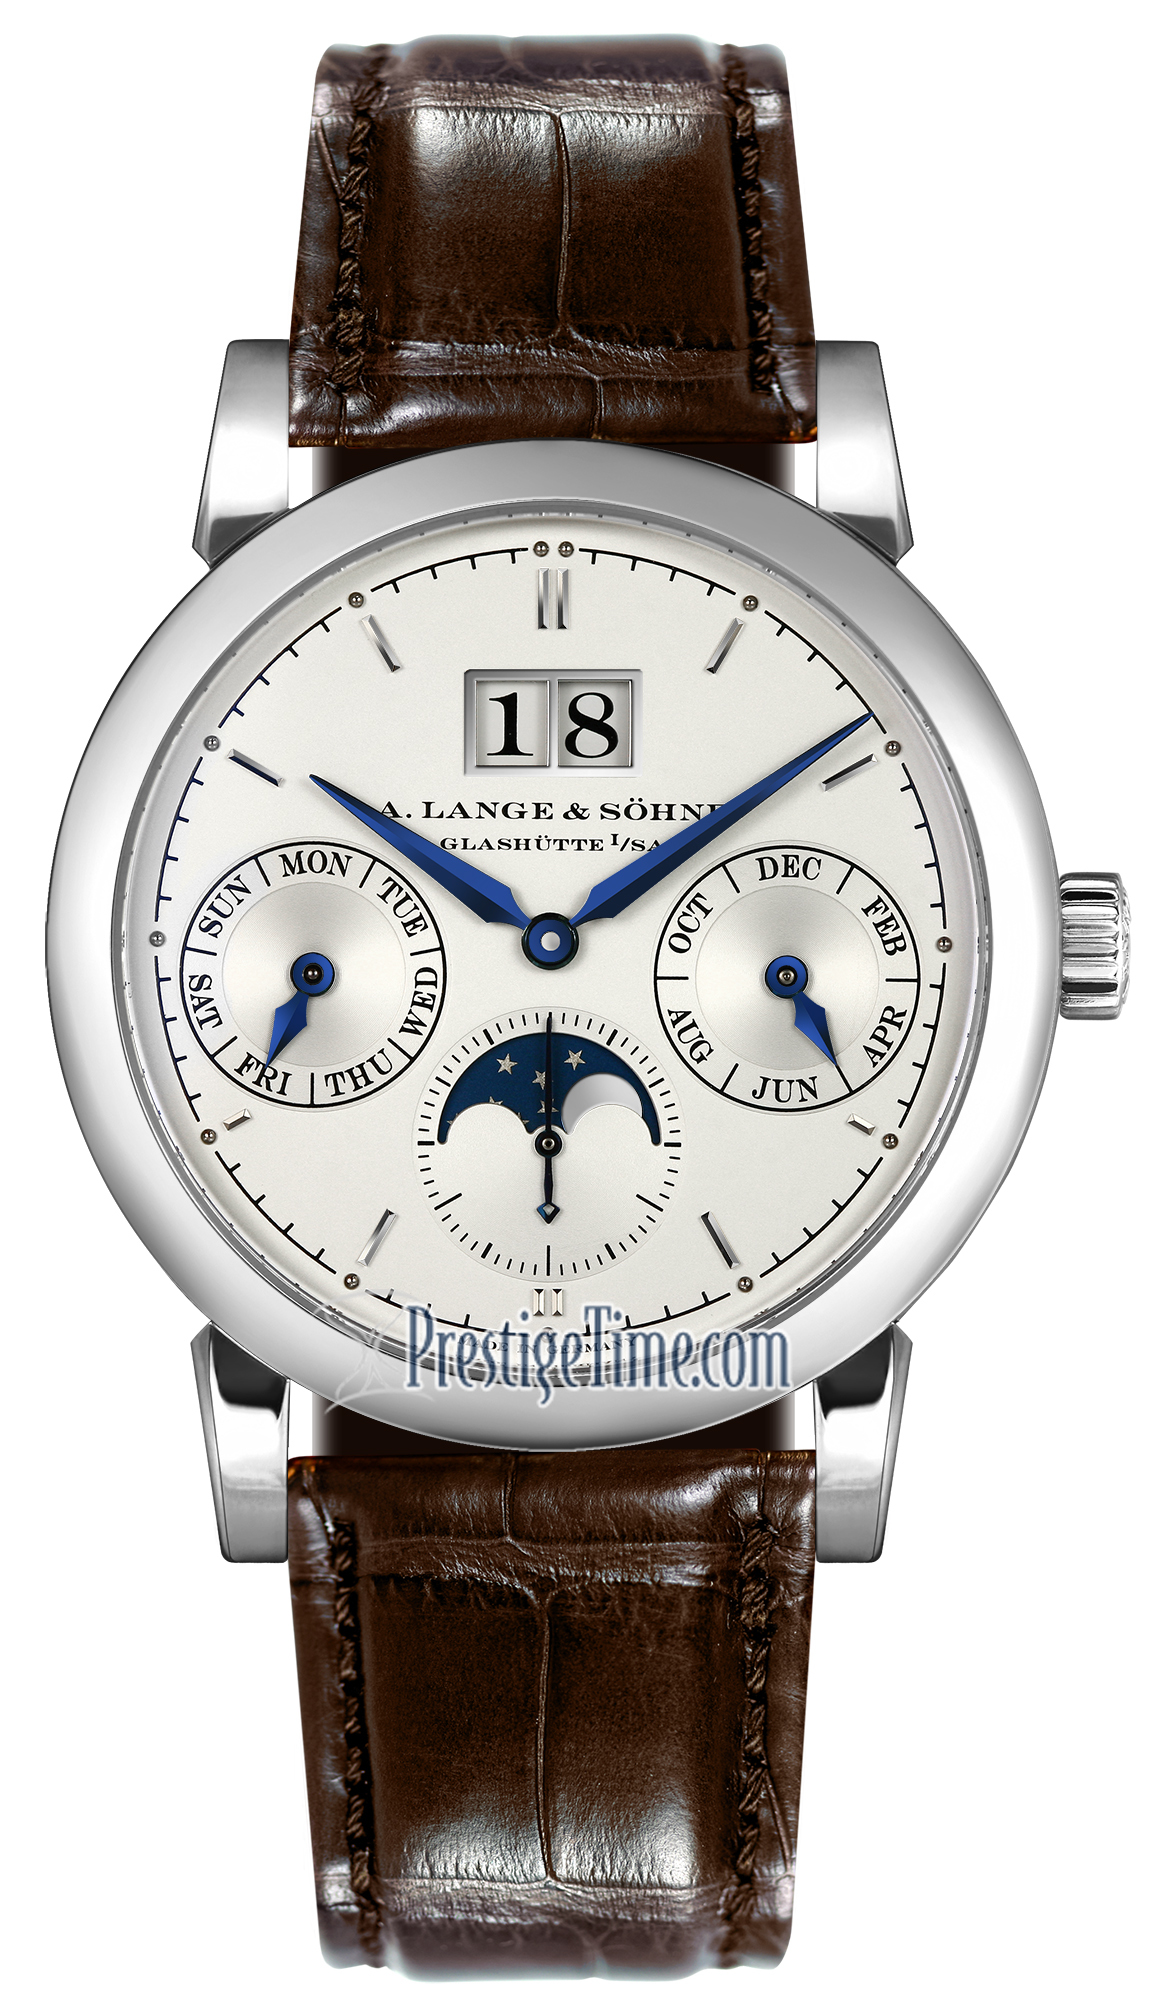 portugieser marshall s dial watch men calendar iwc product steel annual calednar portuguese watches stainless